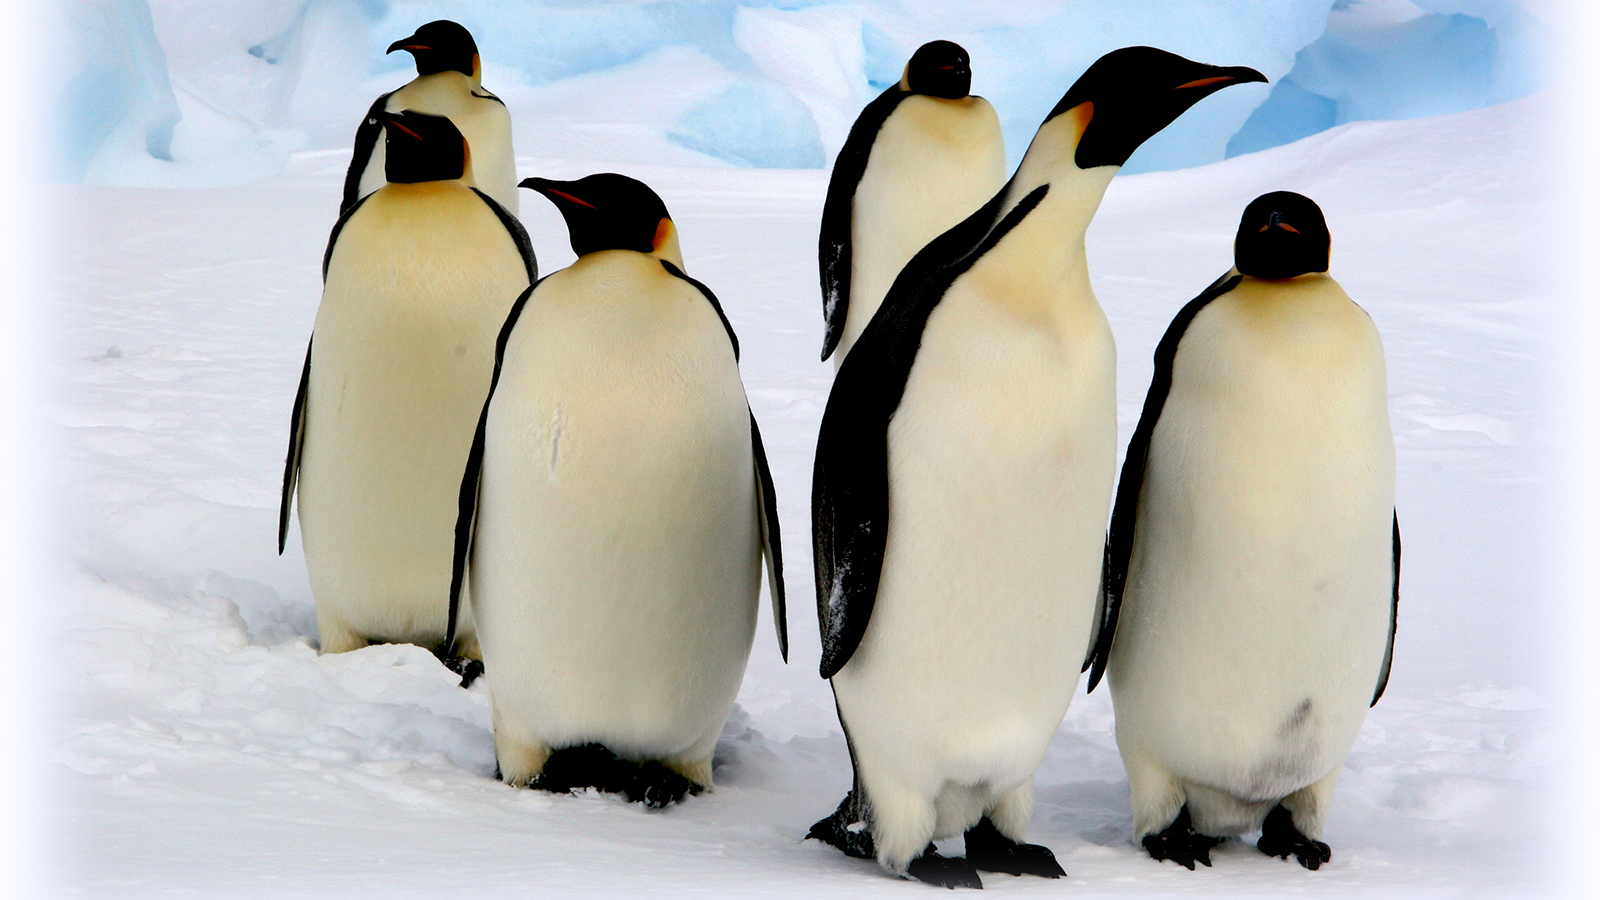 HQ Penguin Wallpapers | File 1089.02Kb